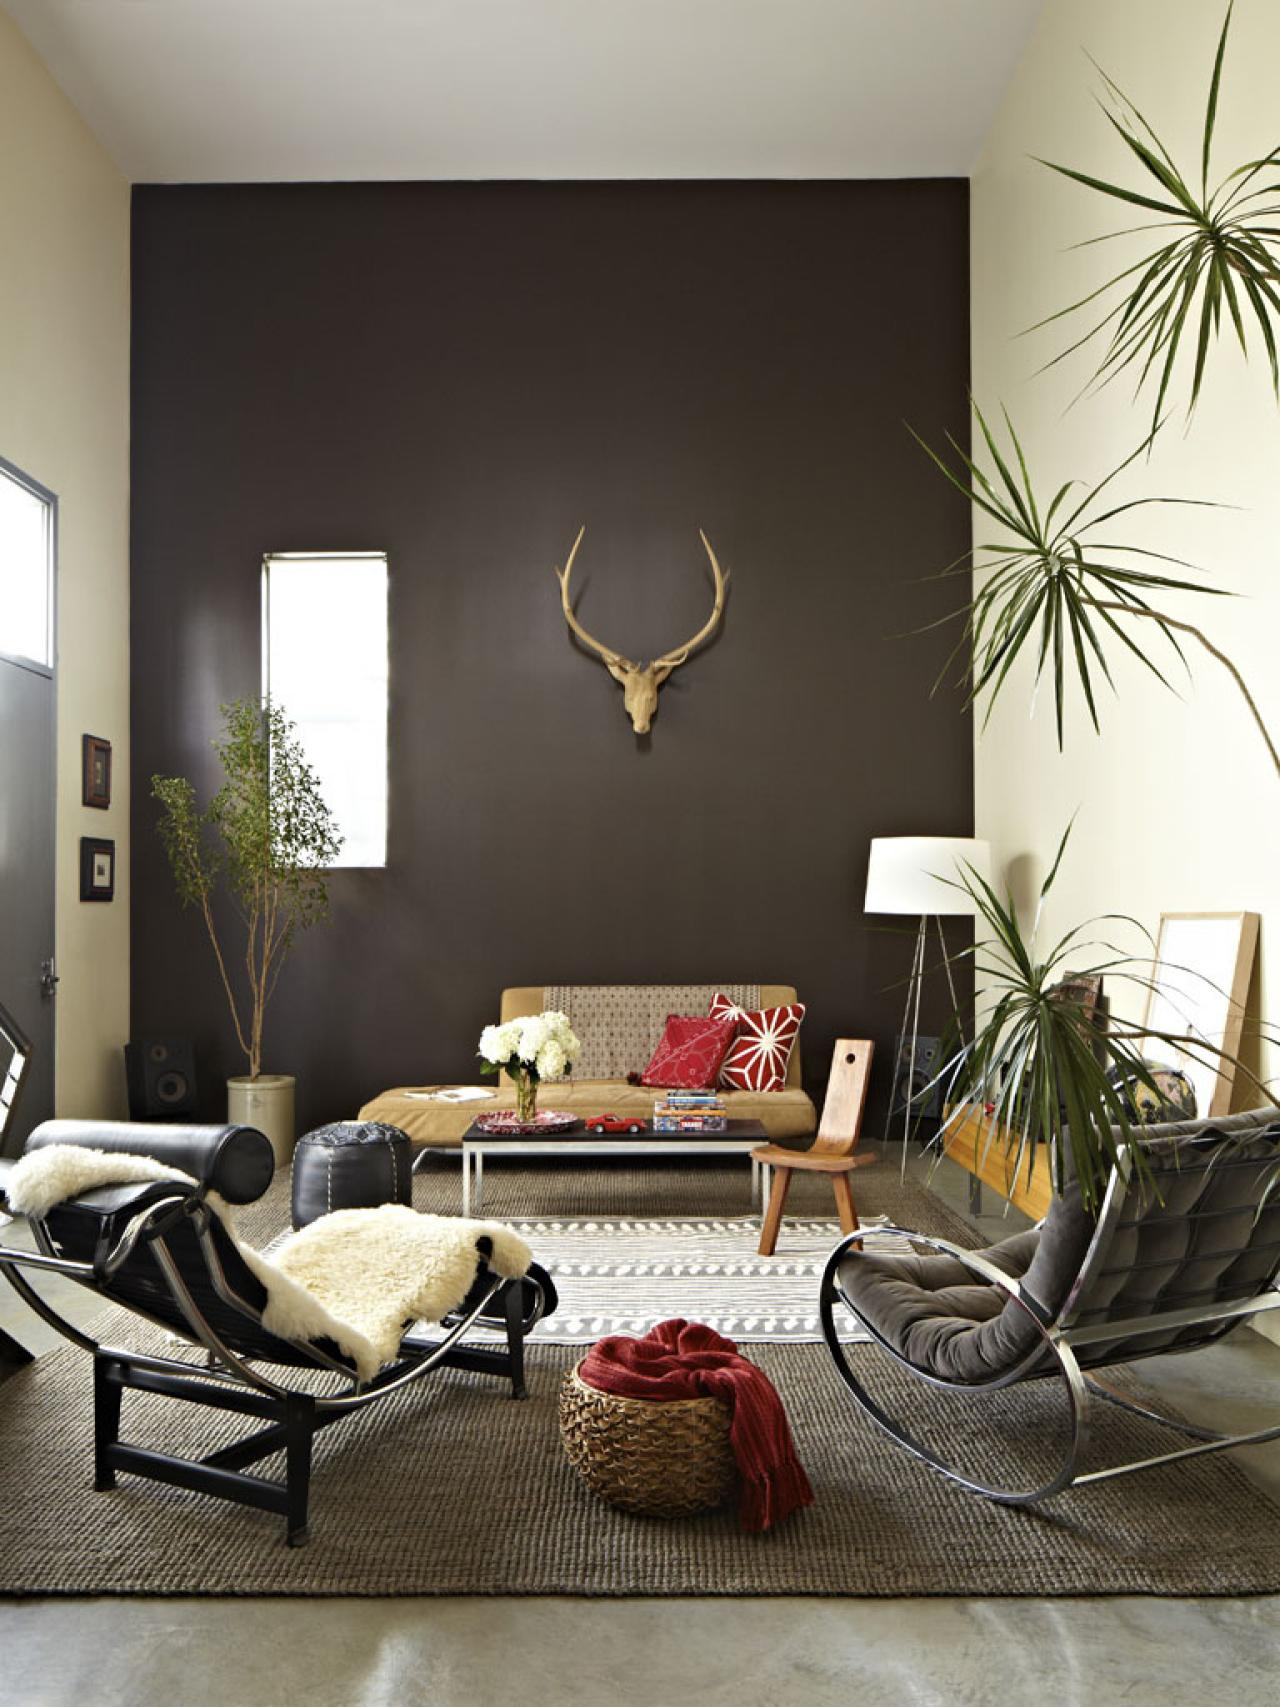 Photos hgtv Brown wall color living room